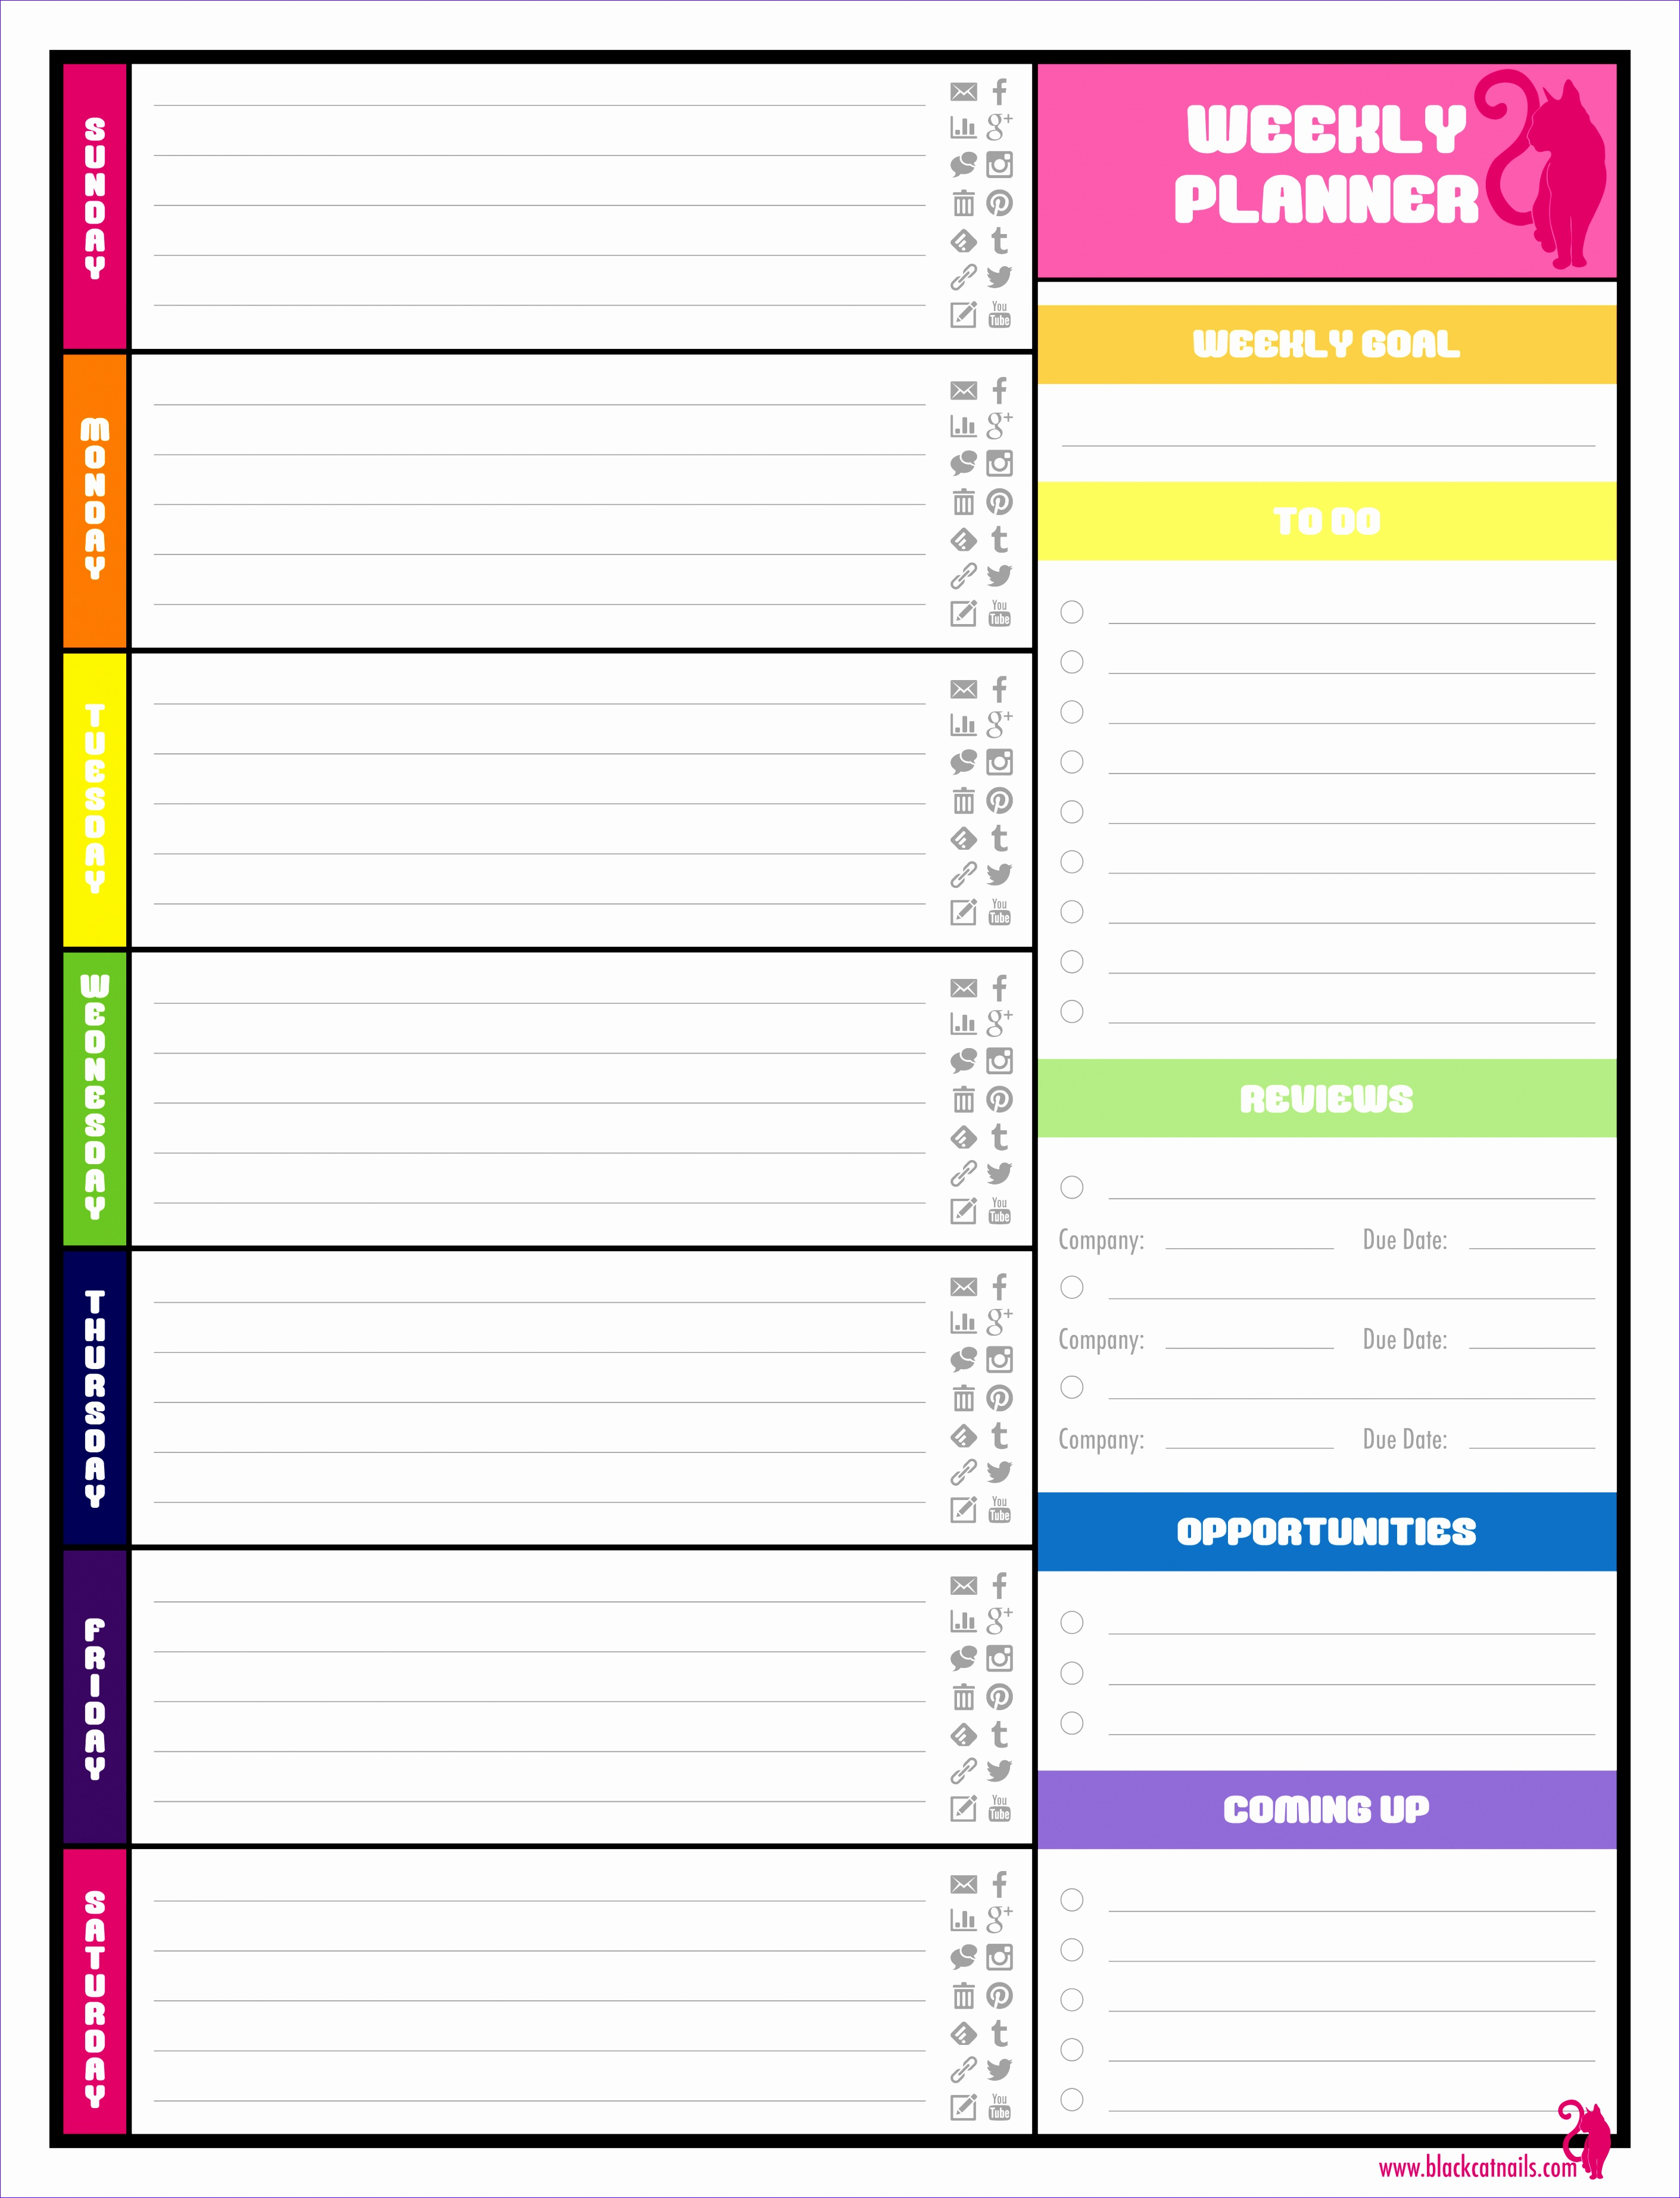 Conference Agenda Template Excel Shsa Inspirational Colorful Weekly Blogging Planner Image Blog Life